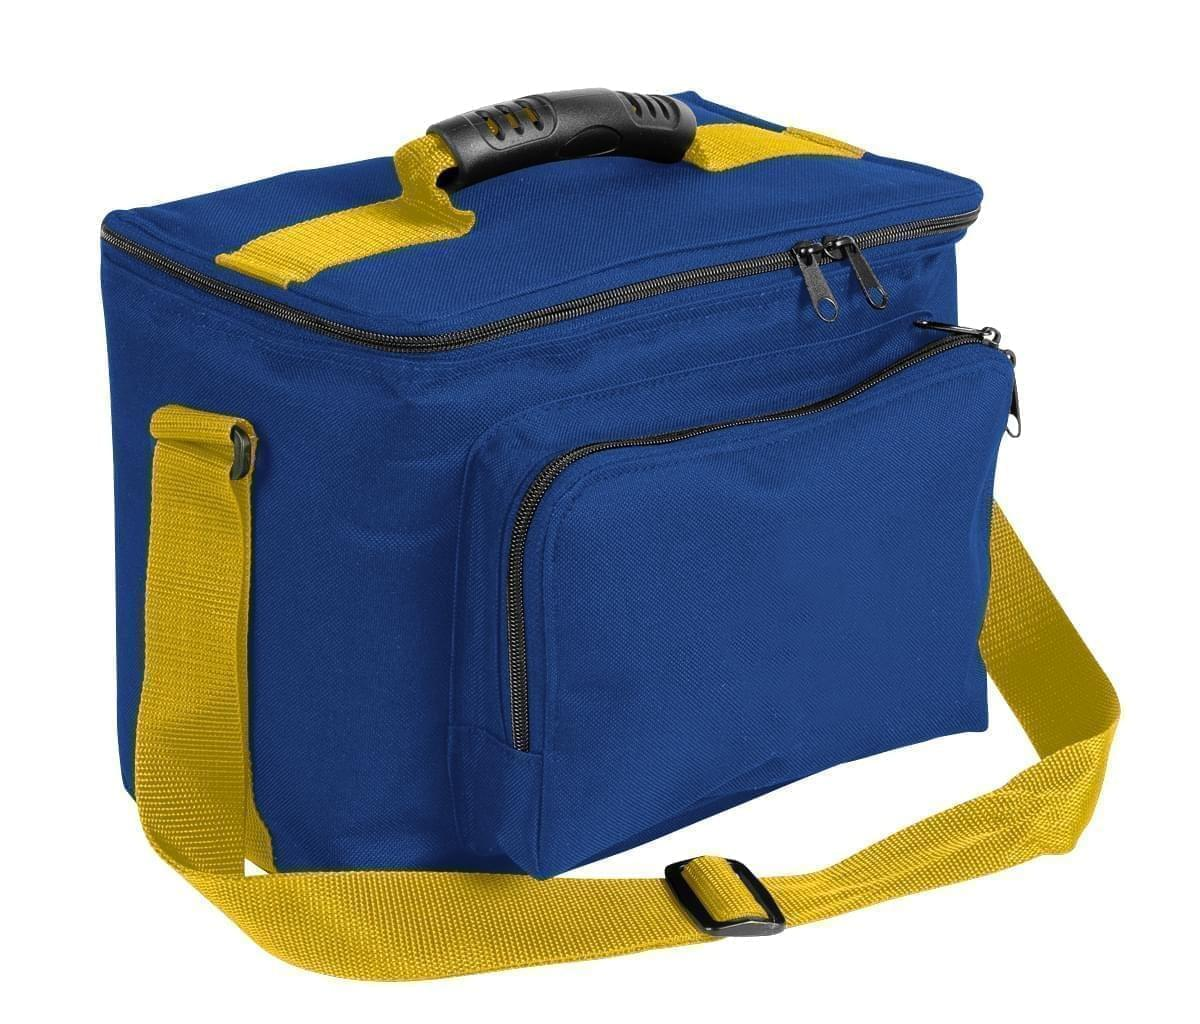 USA Made Nylon Poly Lunch Coolers, Royal Blue-Gold, 11001161-A05